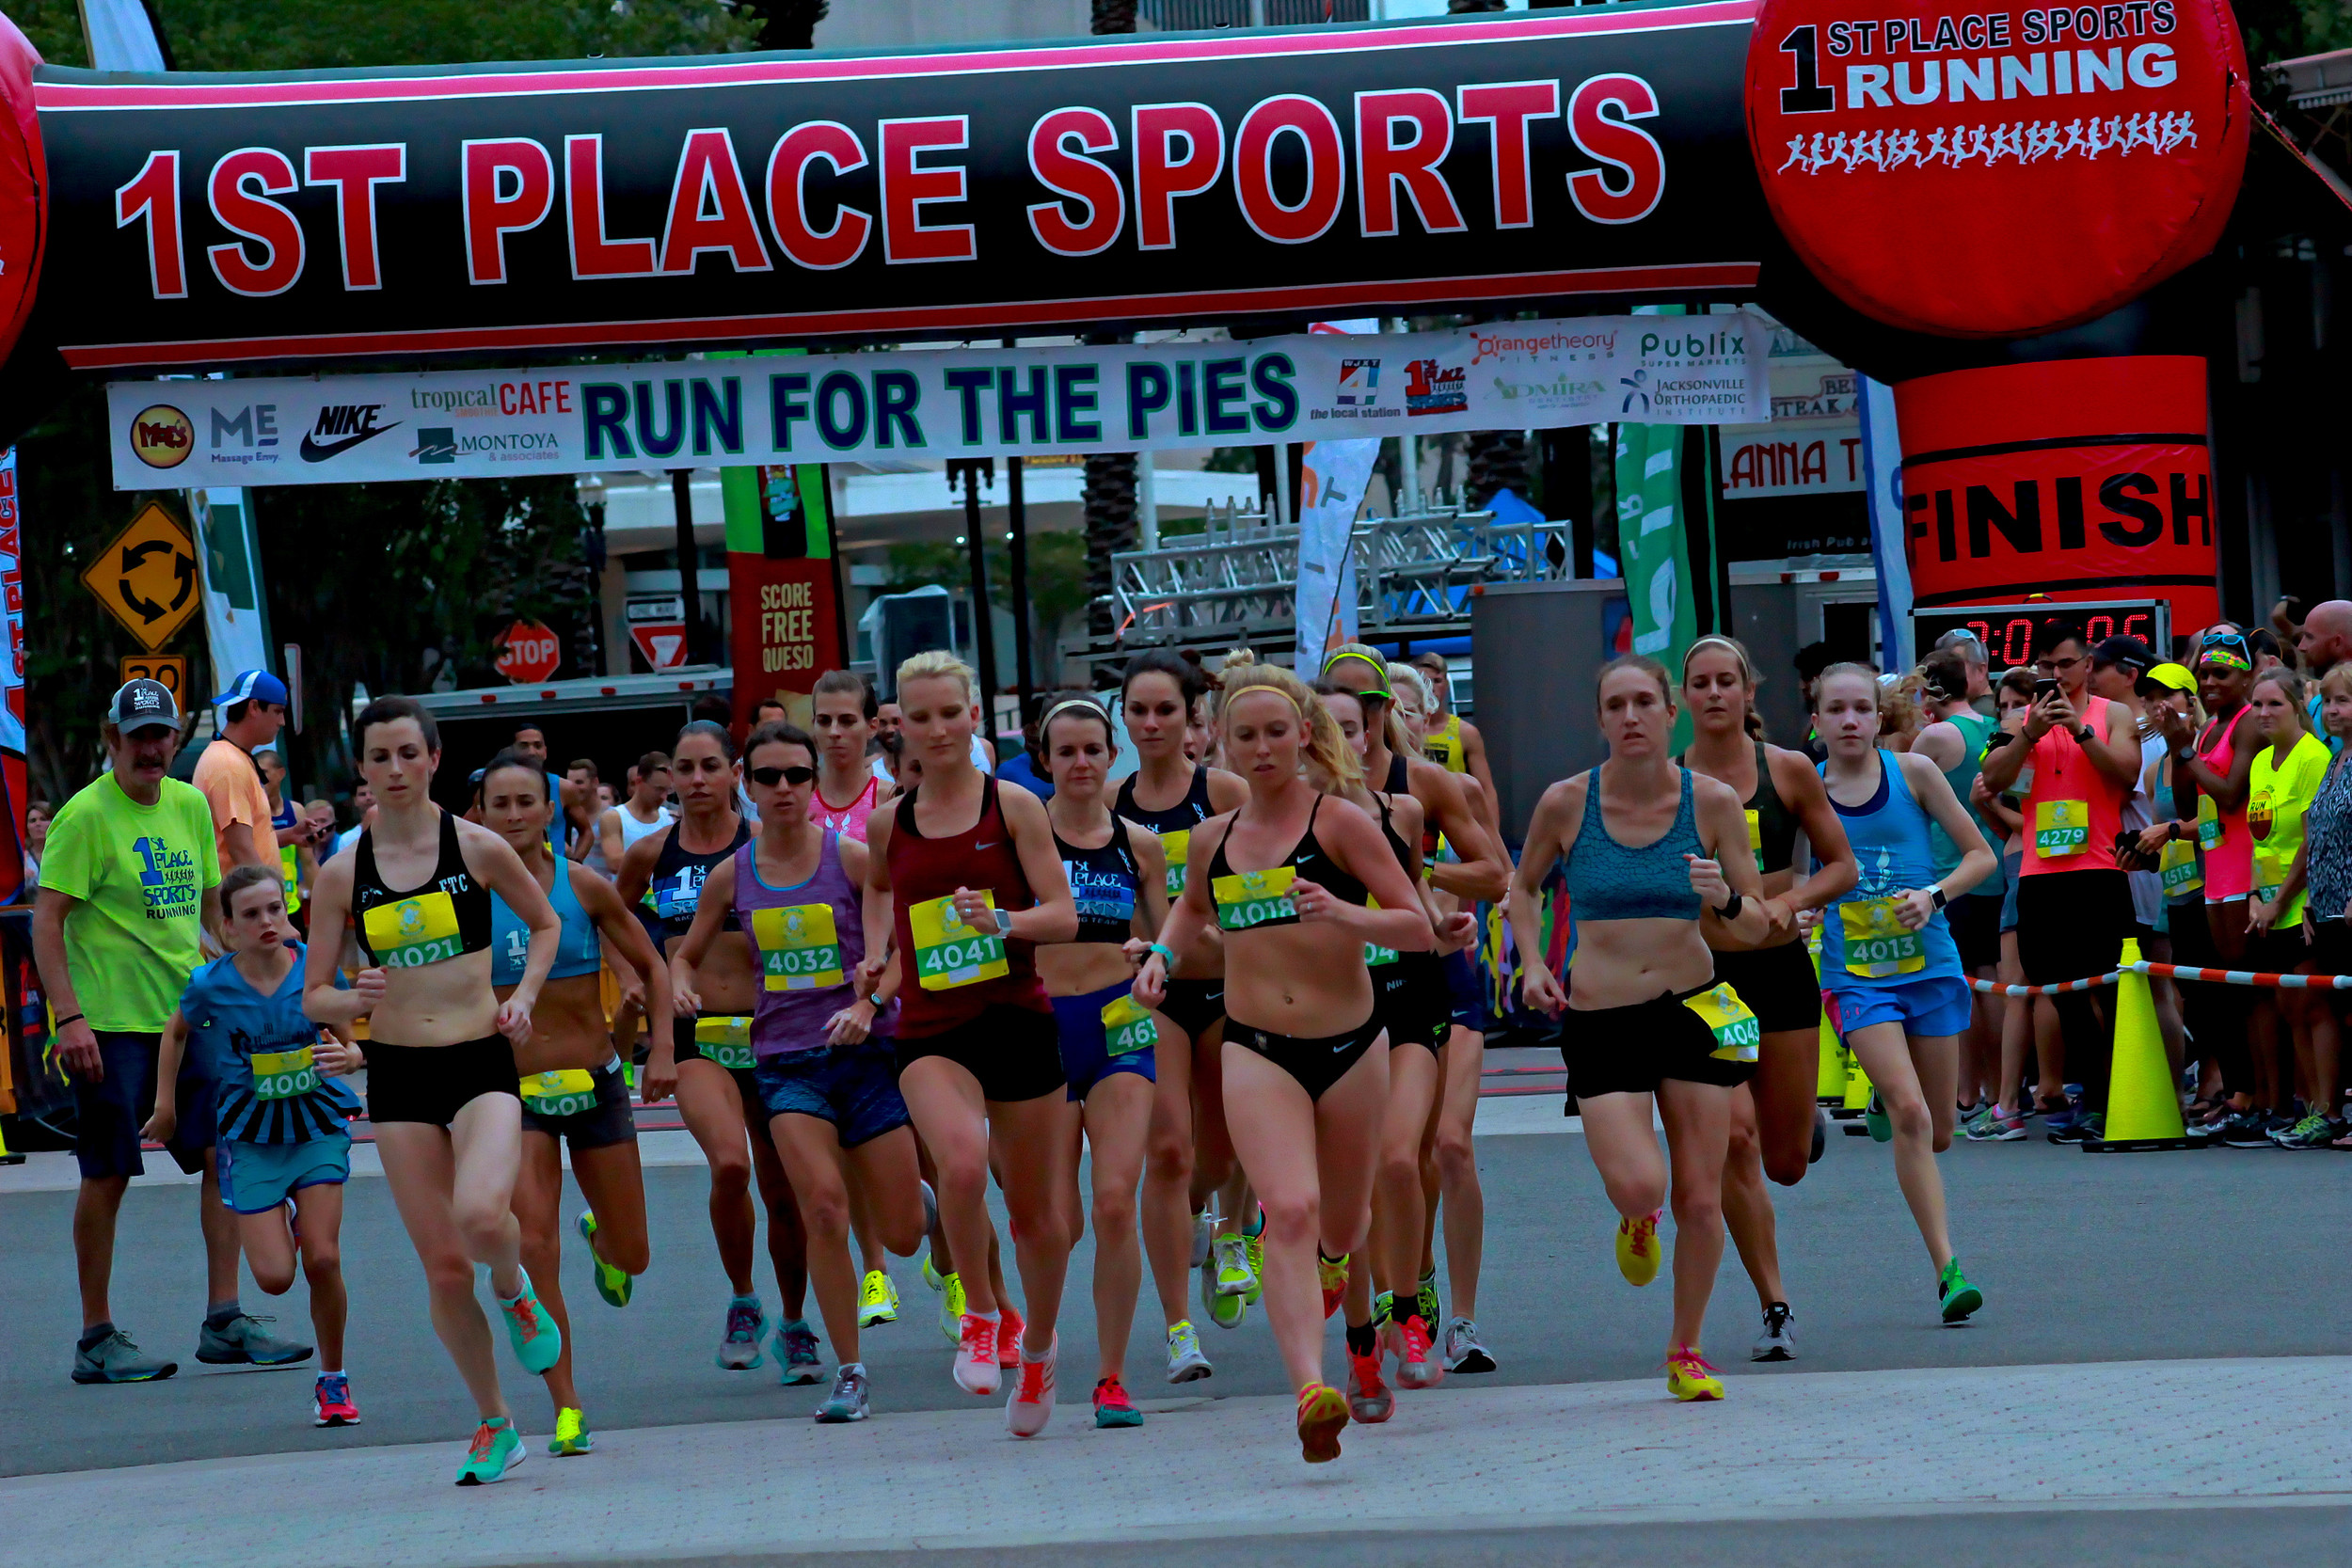 Run for pies 5K elite women's race takes off with 90 second lead on mens elite field.